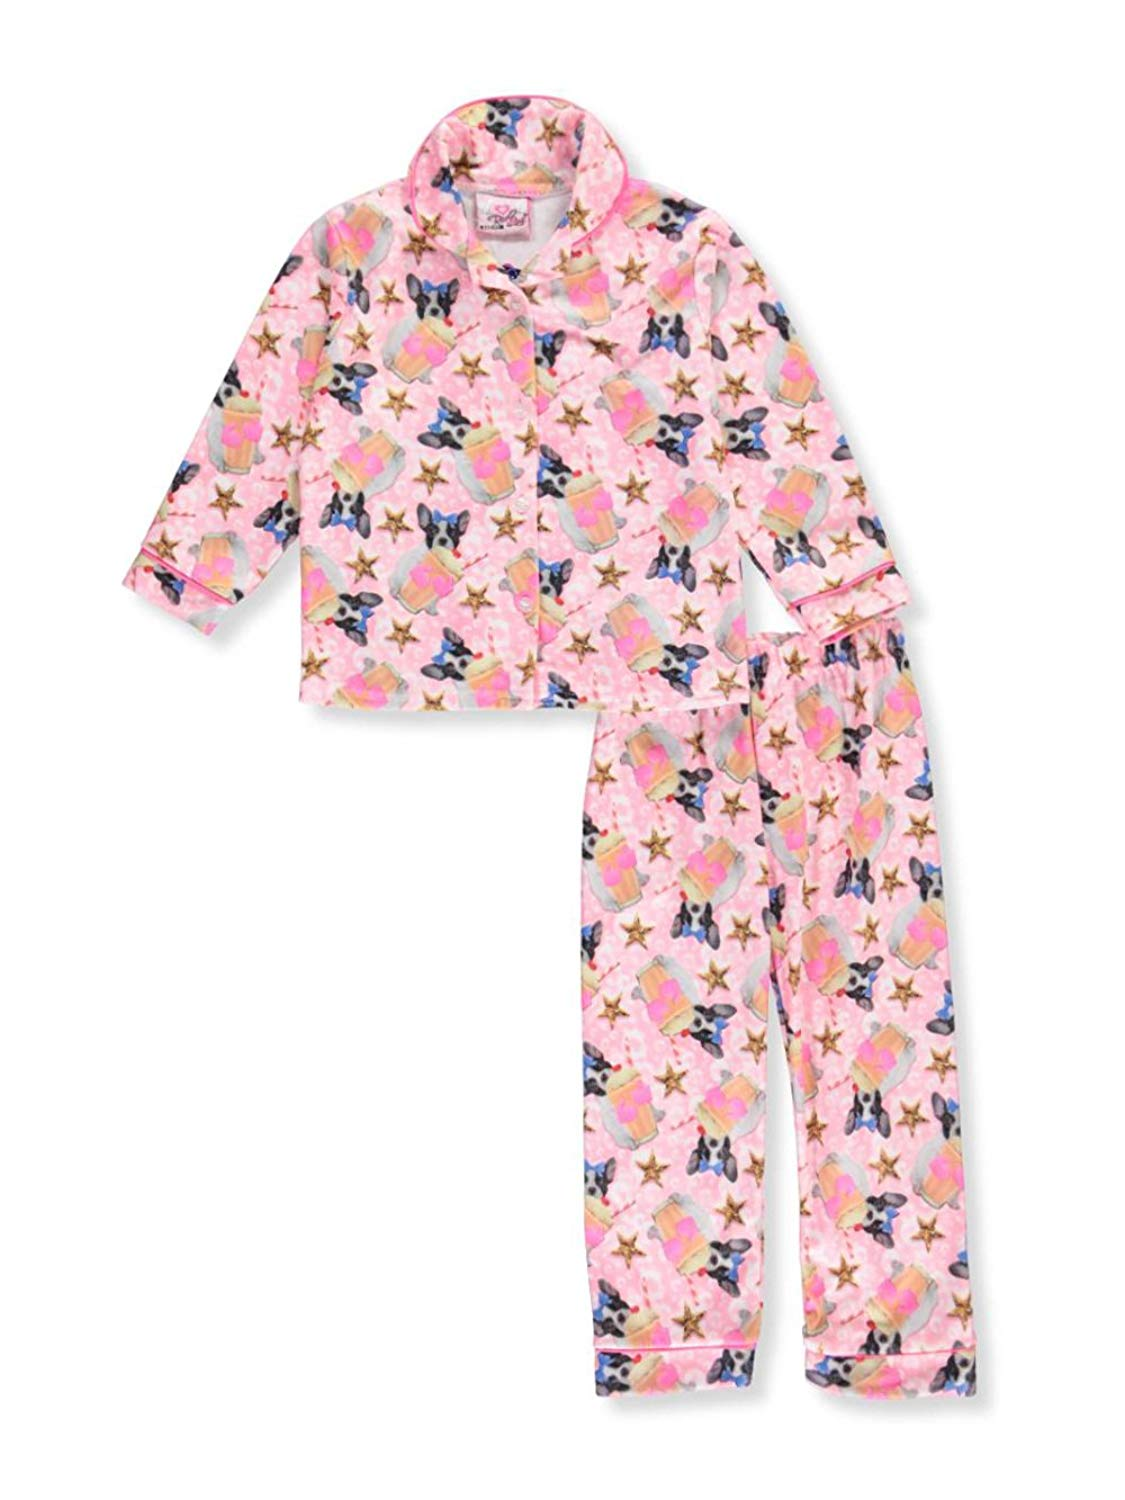 be2370e9e Two Piece Footed Pajamas Toddler